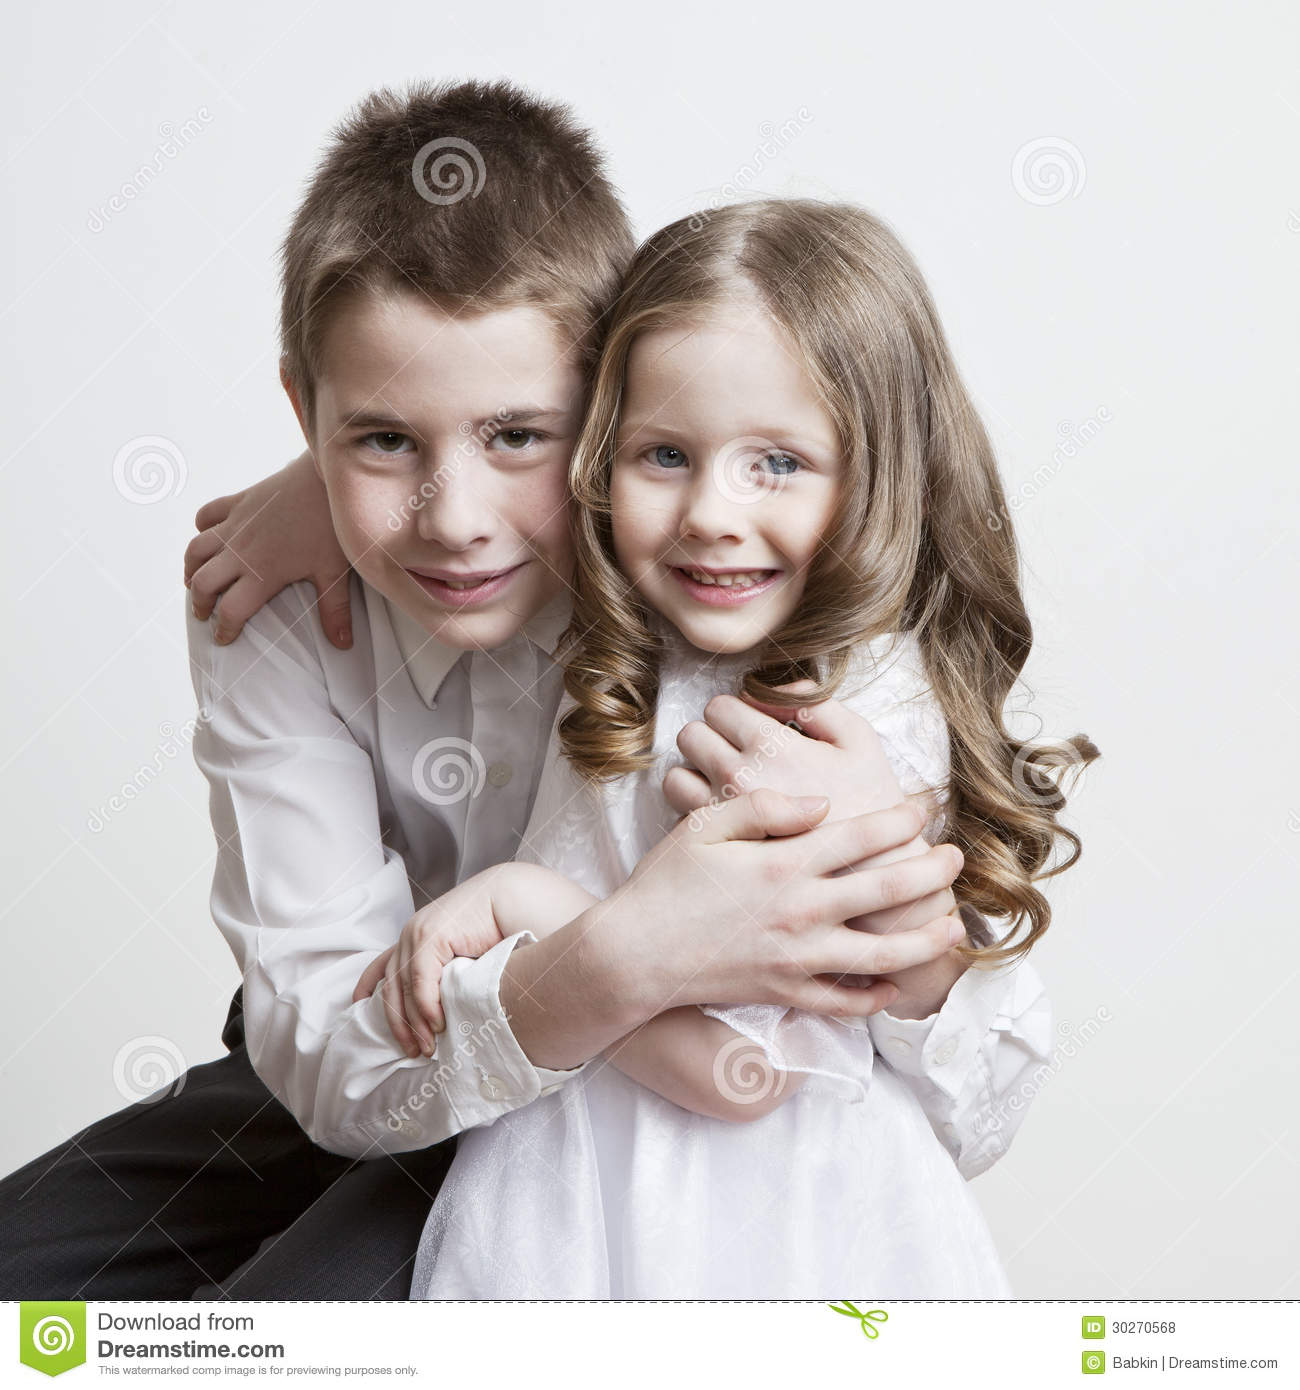 Portrait Of A Child The Love Of Brother And Sister In His Arms